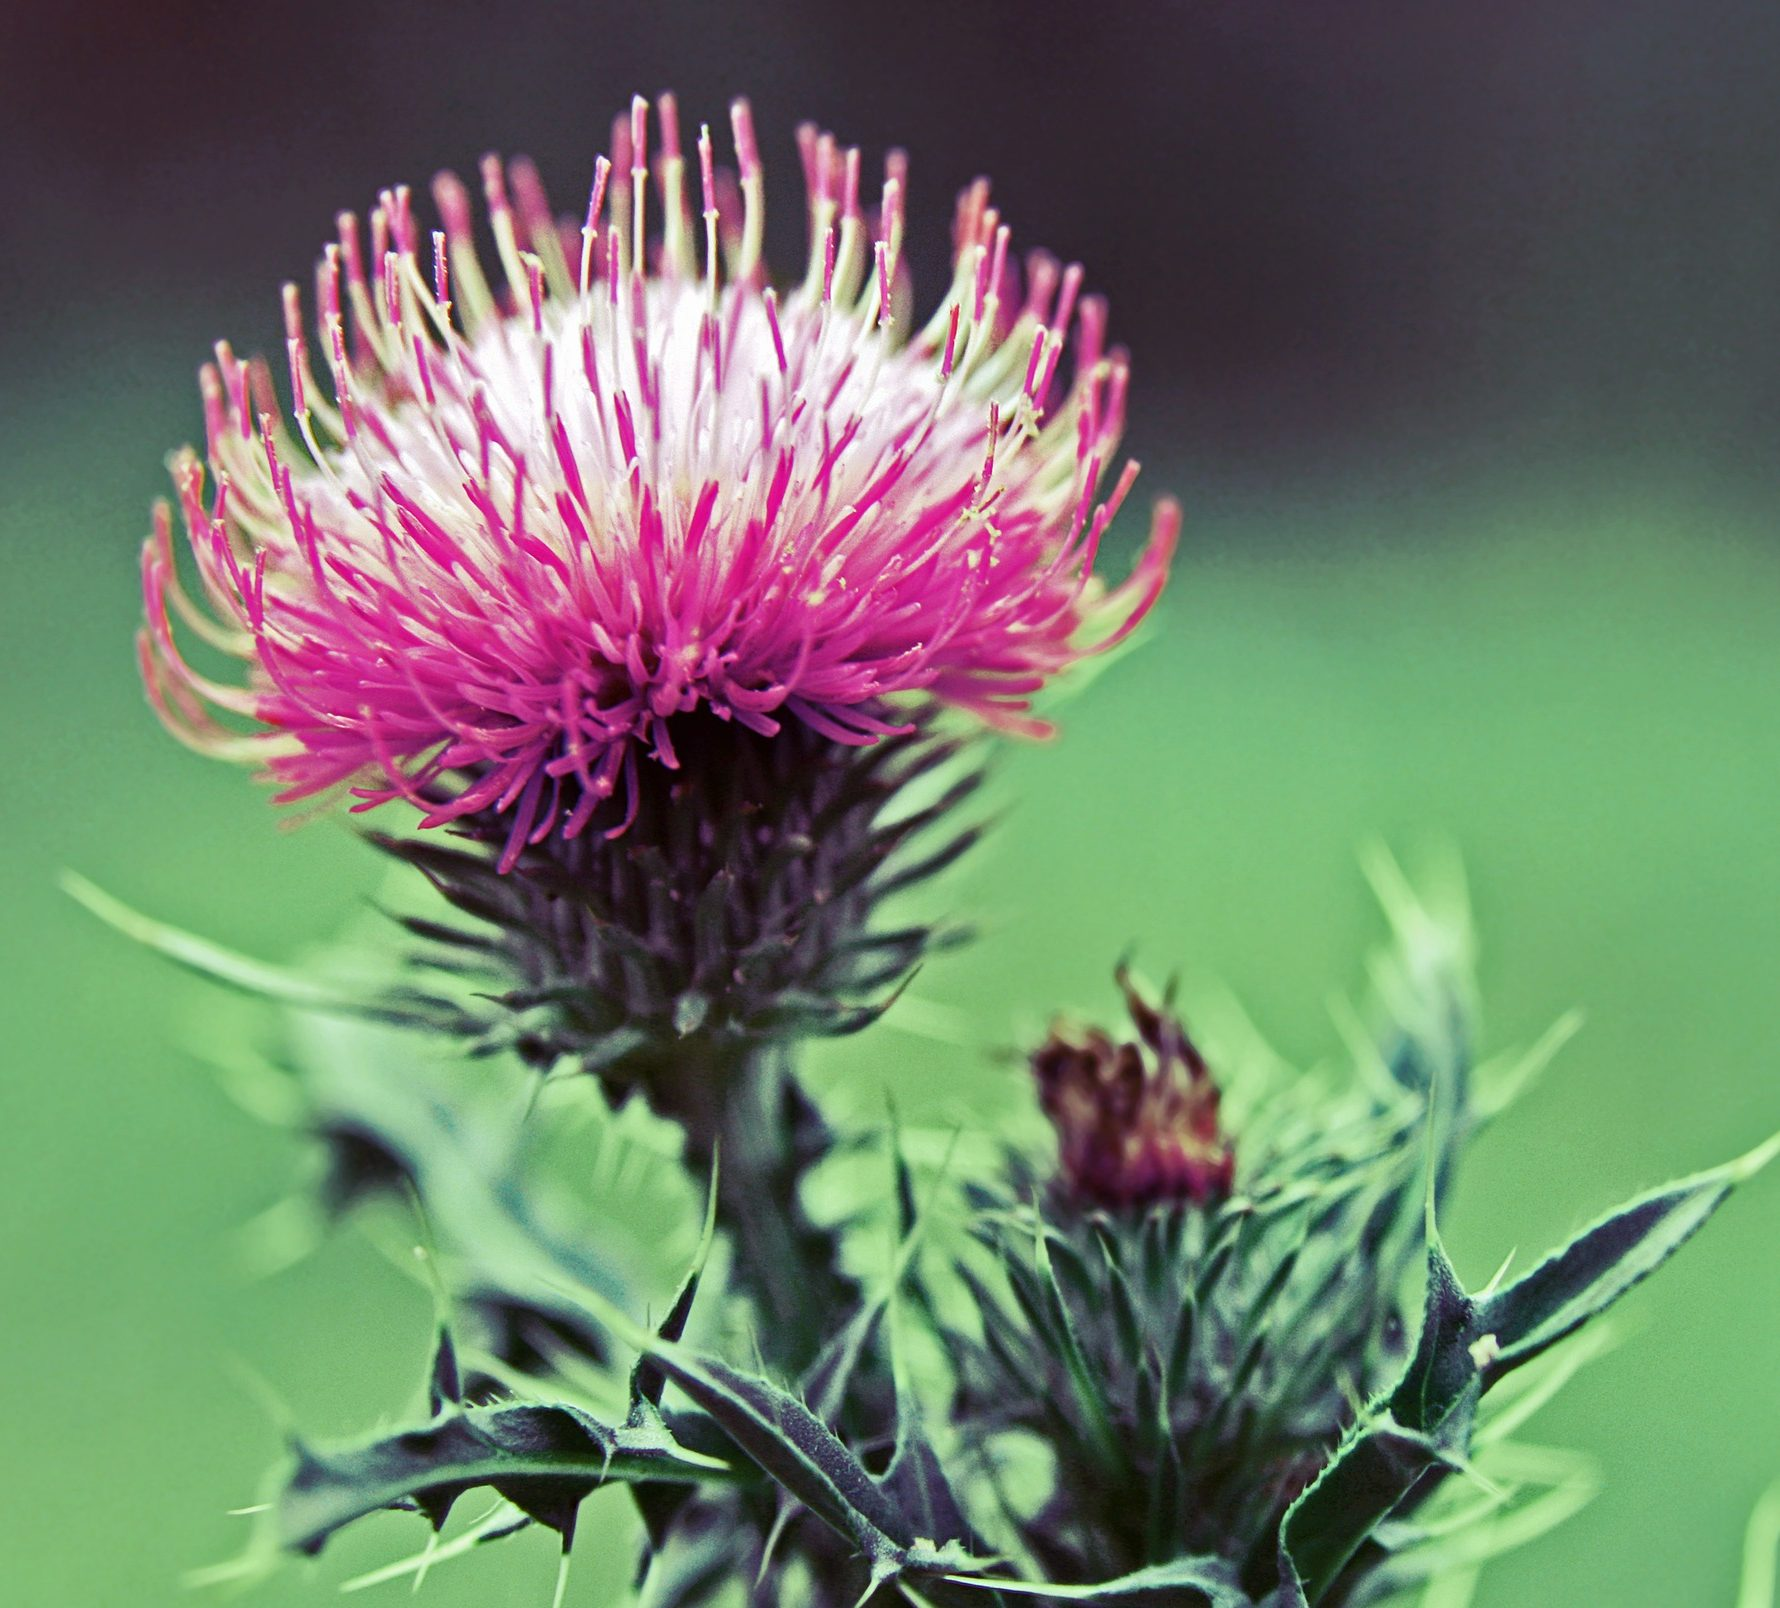 A bright pink thistle in Scotland